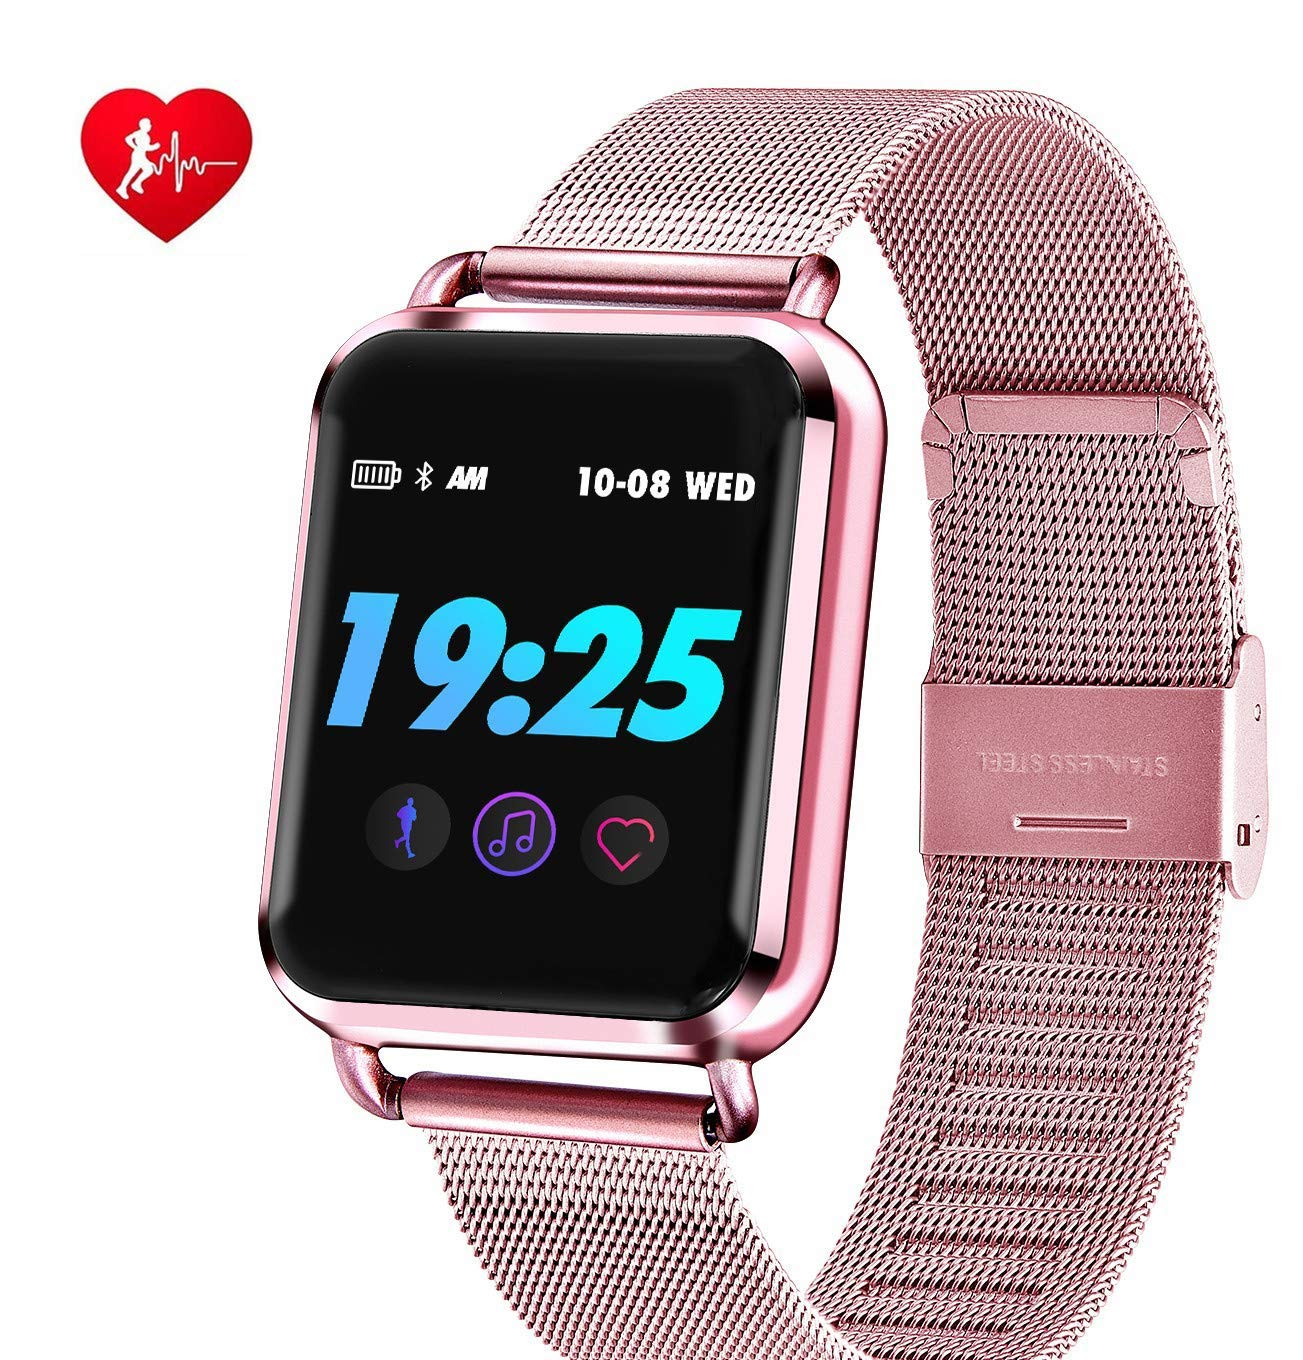 Smartwatch Women, BoensWaterproof Bluetooth Smart Color Screen Dynamic Blood Oxygen Pressure Pedometer Fitness Tracker Heart Rate for iPhone Samsung Android- Rose Gold